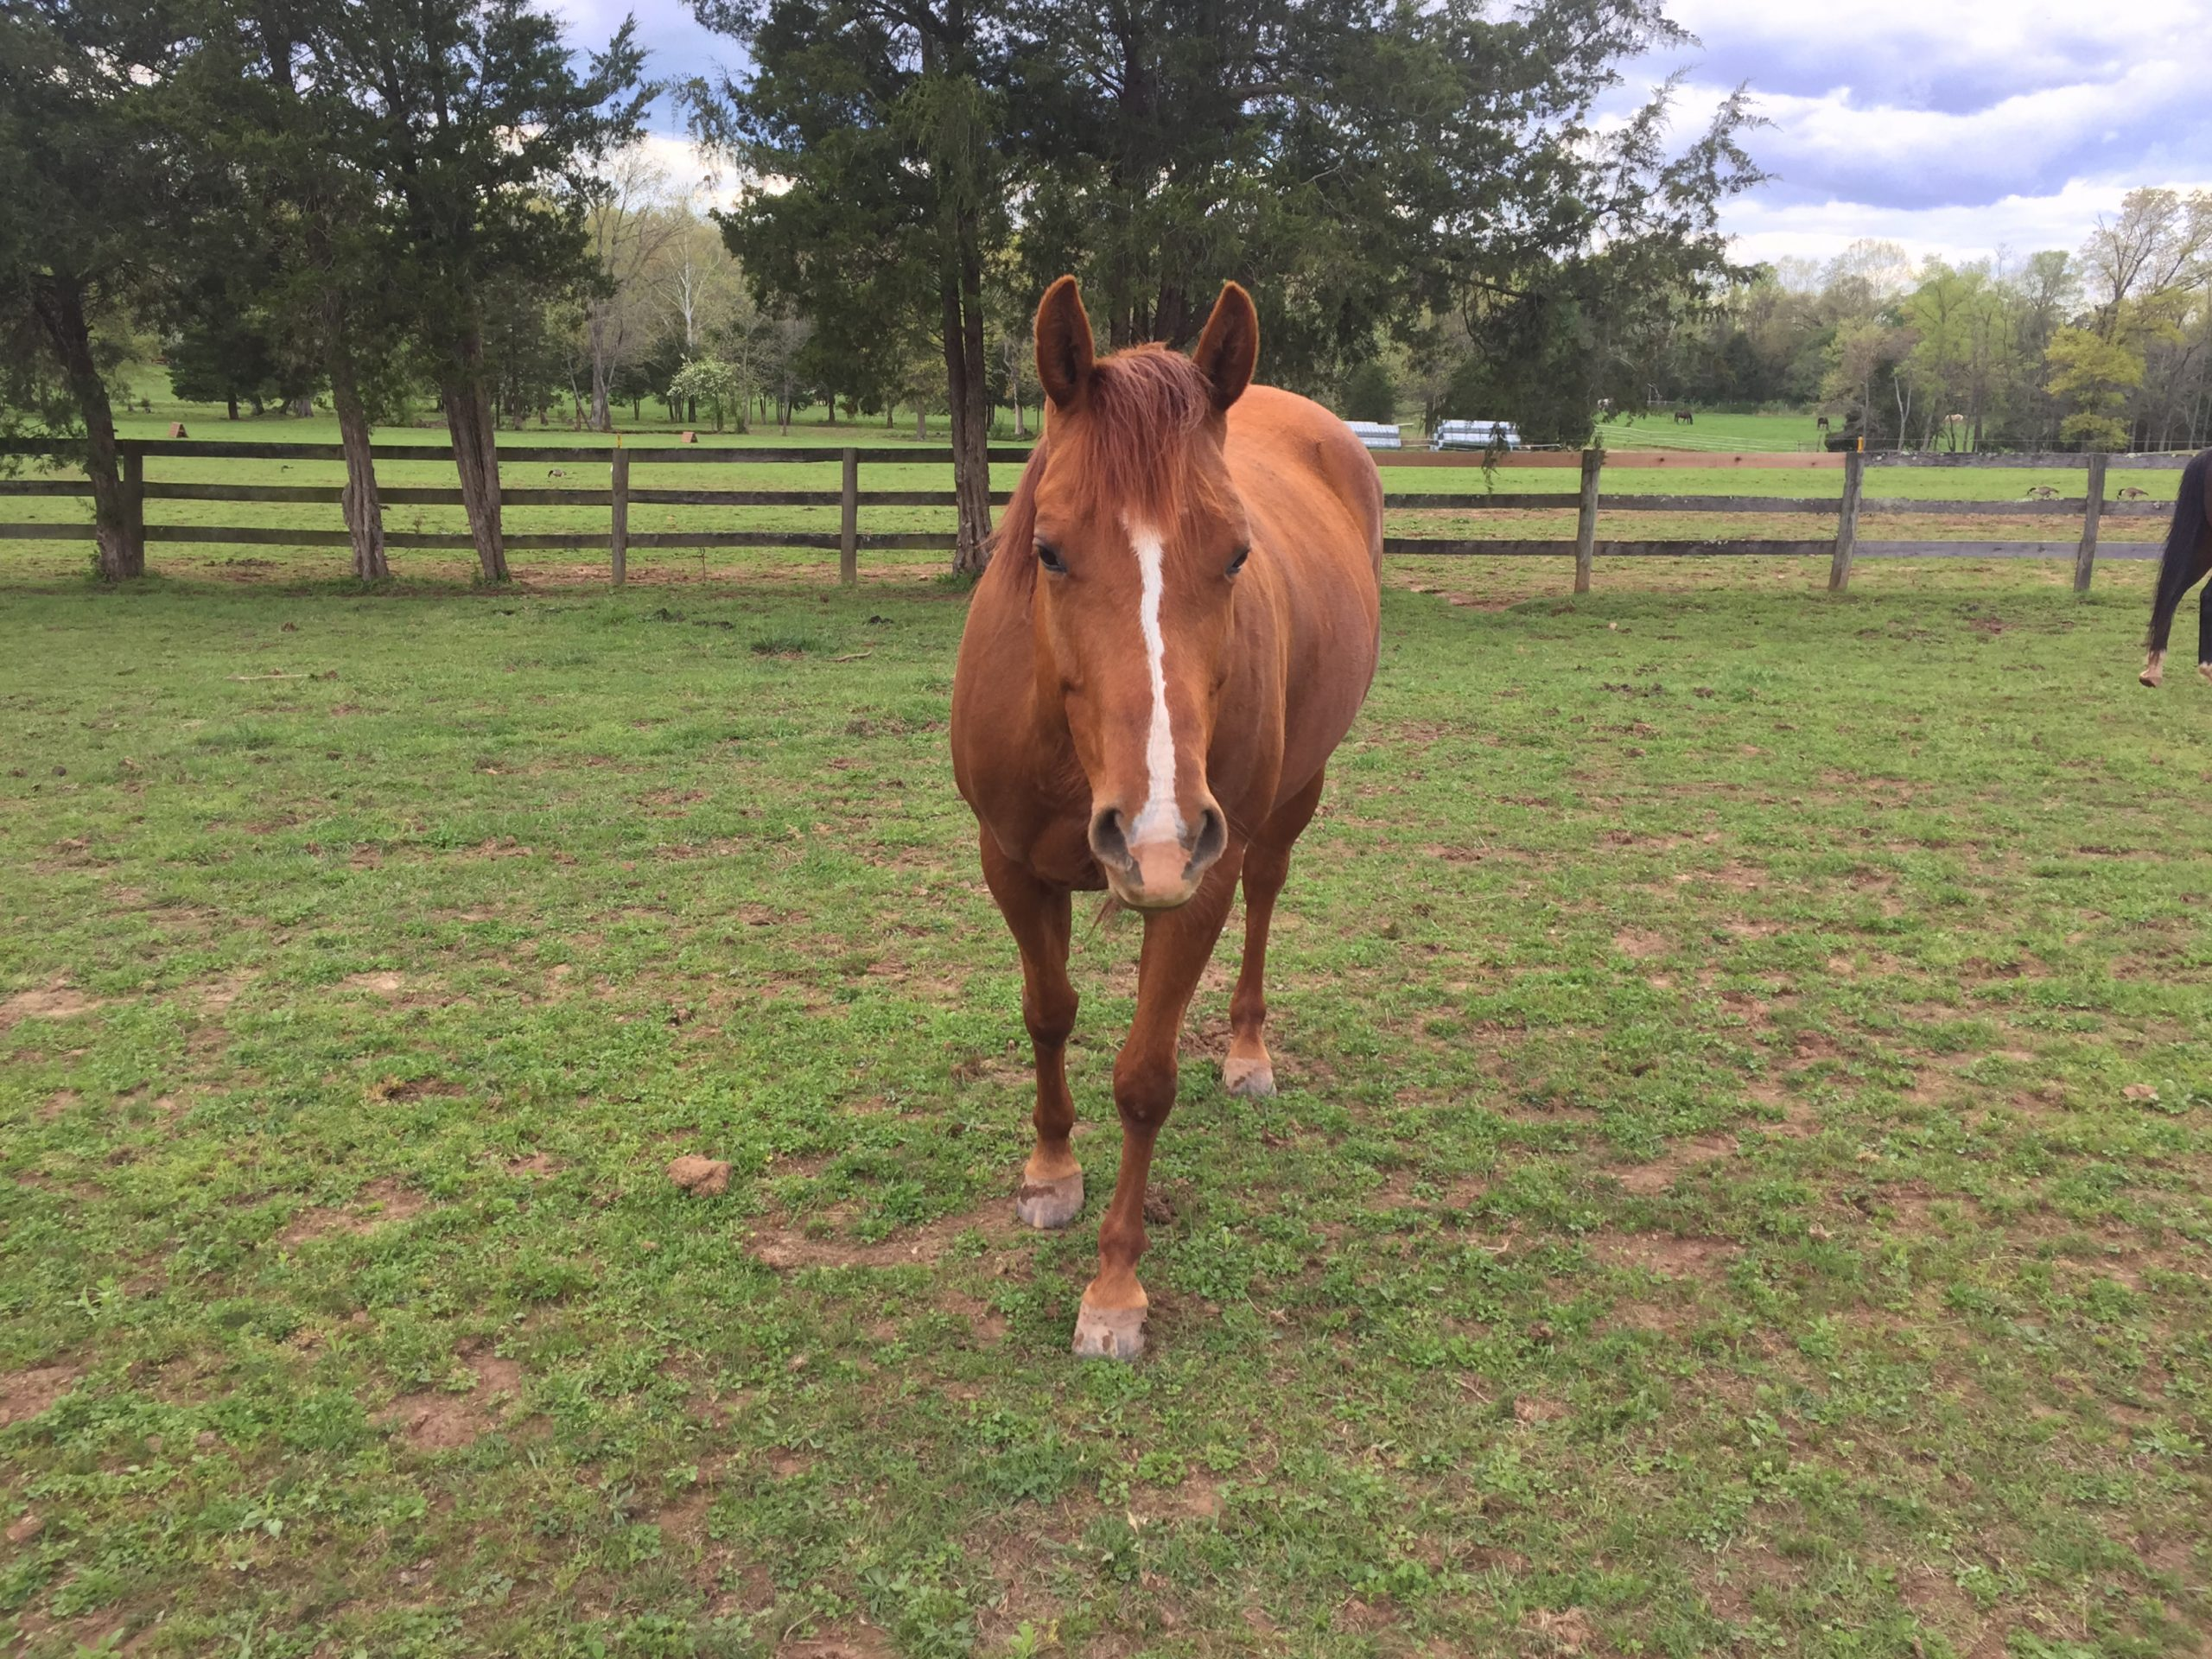 How to Work With a Horse at Liberty: Beginner Tips from Lindsey Partridge